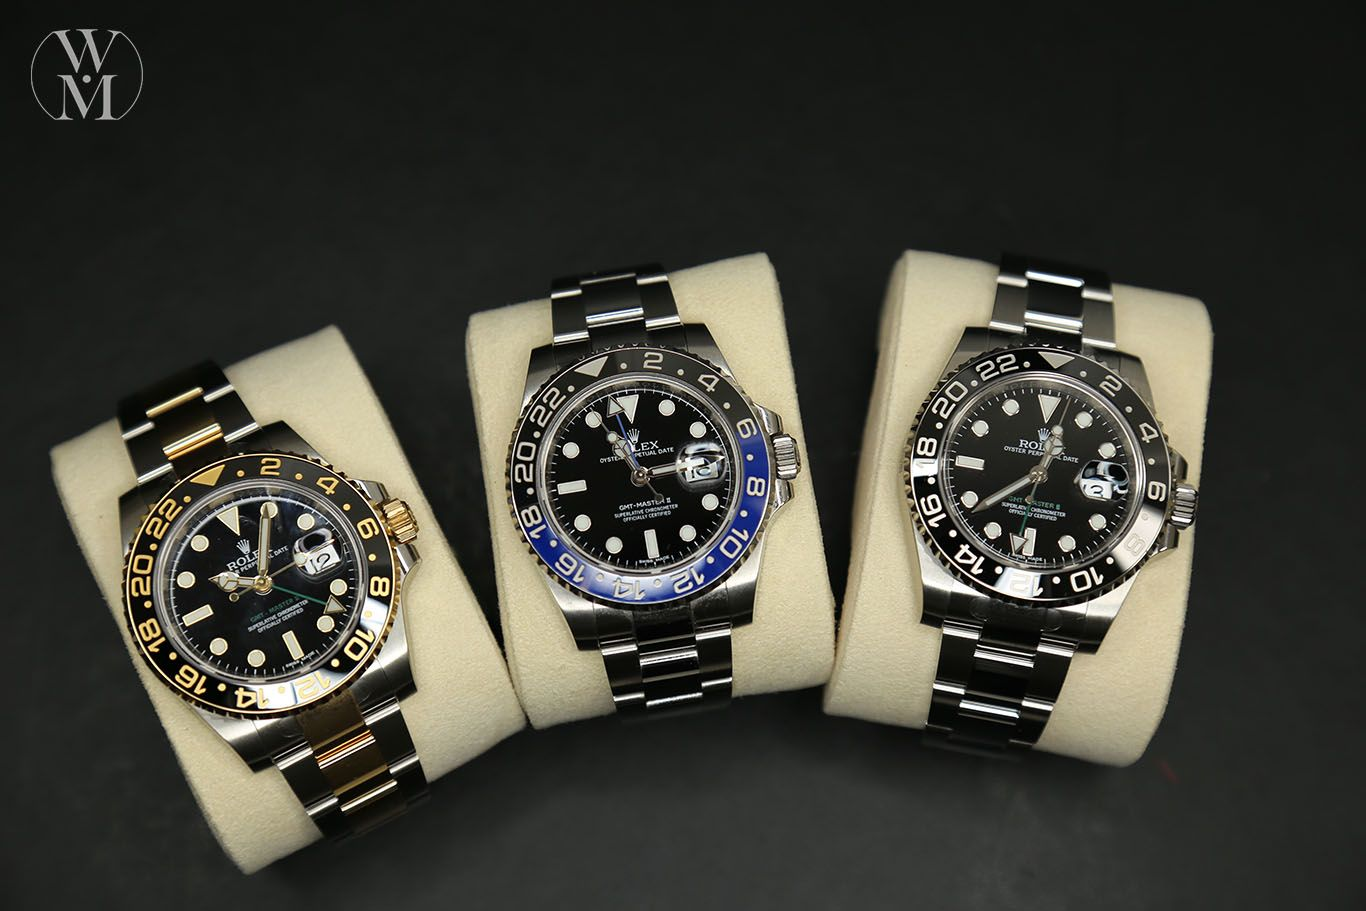 A Classic Rolex Model The Gmt Master Was Introduced In 1955 To Meet The Needs Of International Pilots Fifty Years Late Rolex Rolex Gmt Master Ii Rolex Models